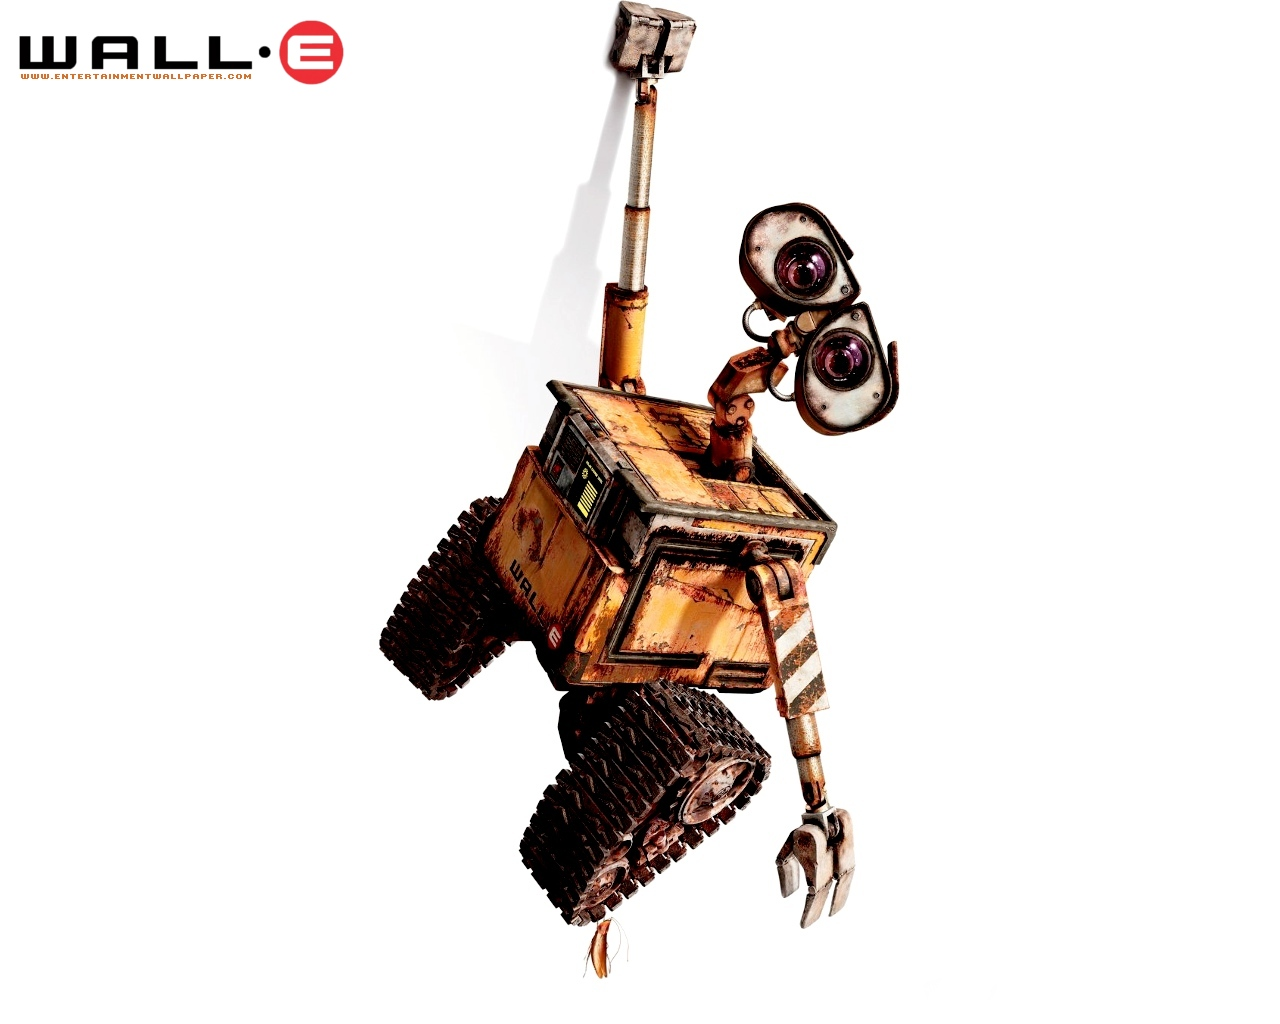 Download Free WALL E Wallpapers 1280x1024